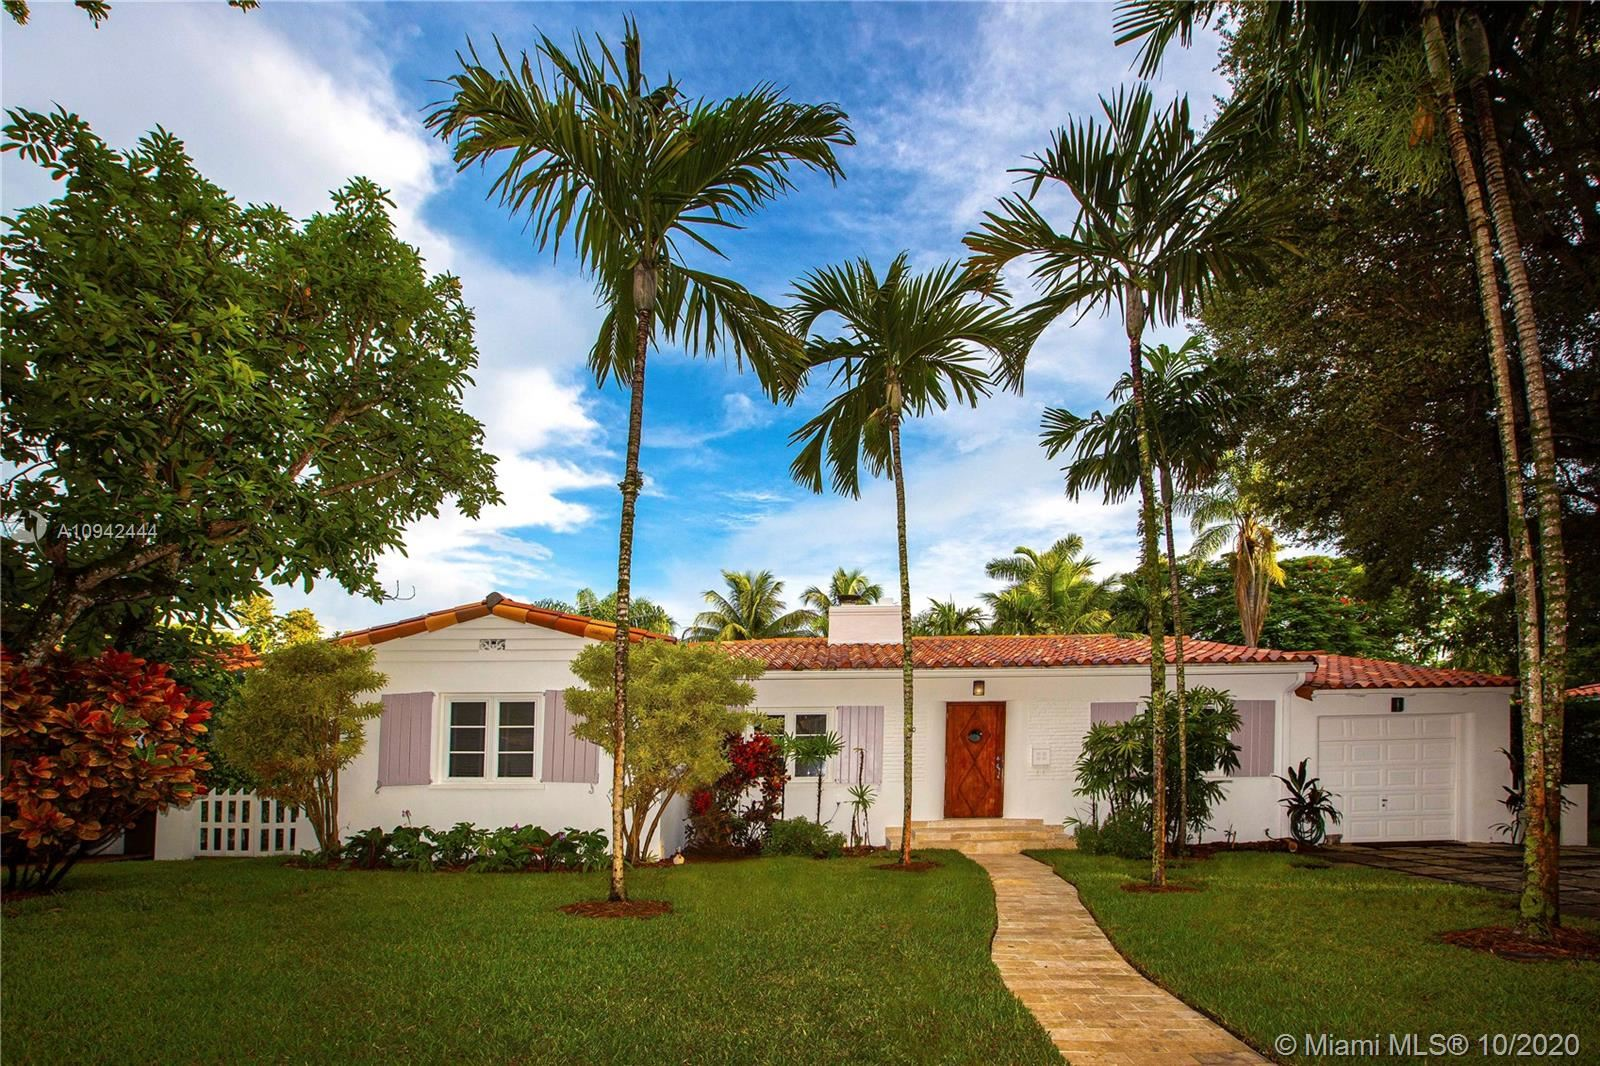 910 Catalonia Ave, Coral Gables, FL 33134 - #: A10942444